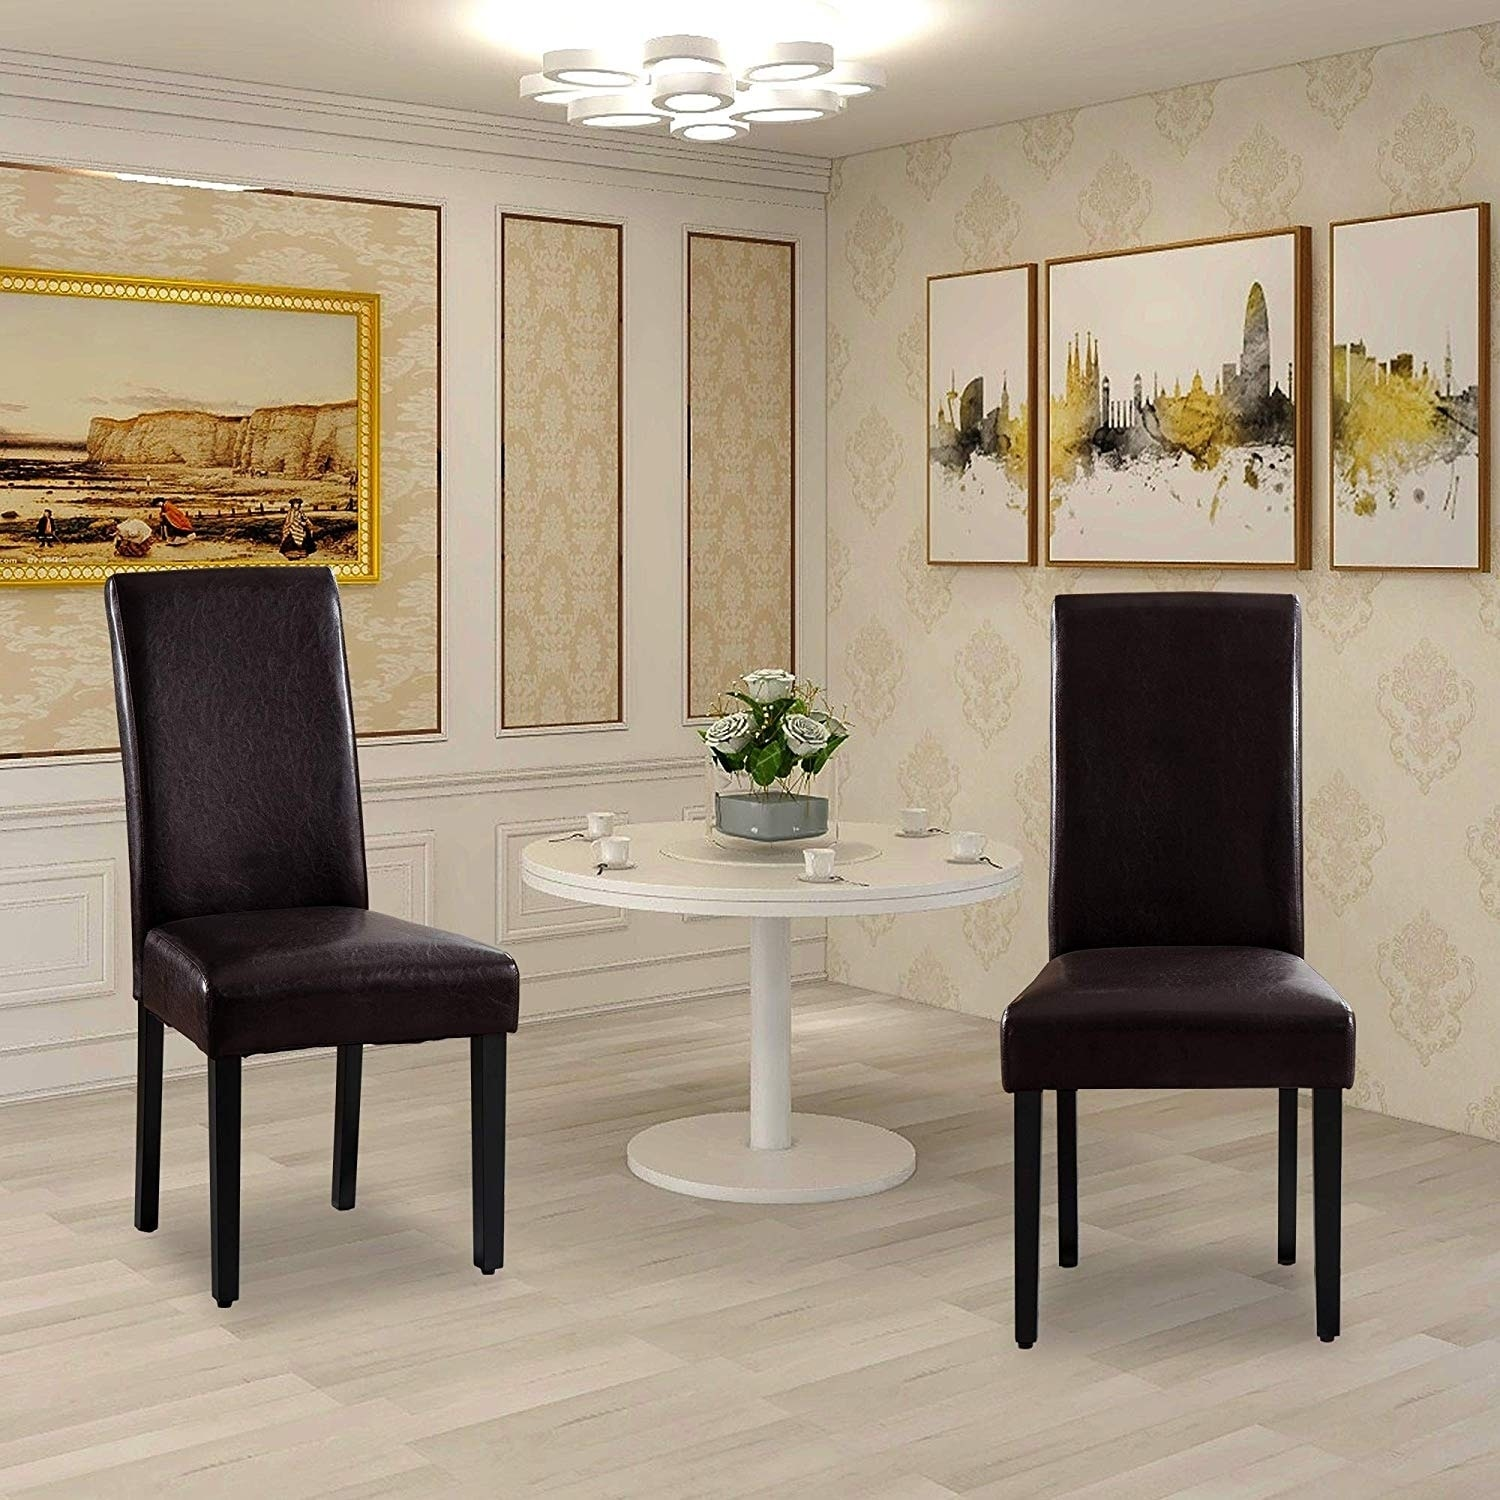 Vanity Art  Synthetic Leather Comfortable Armless Set of 2-Pieces Dining Room Accent Chairs Fabric Upholstered with Wooden Legs